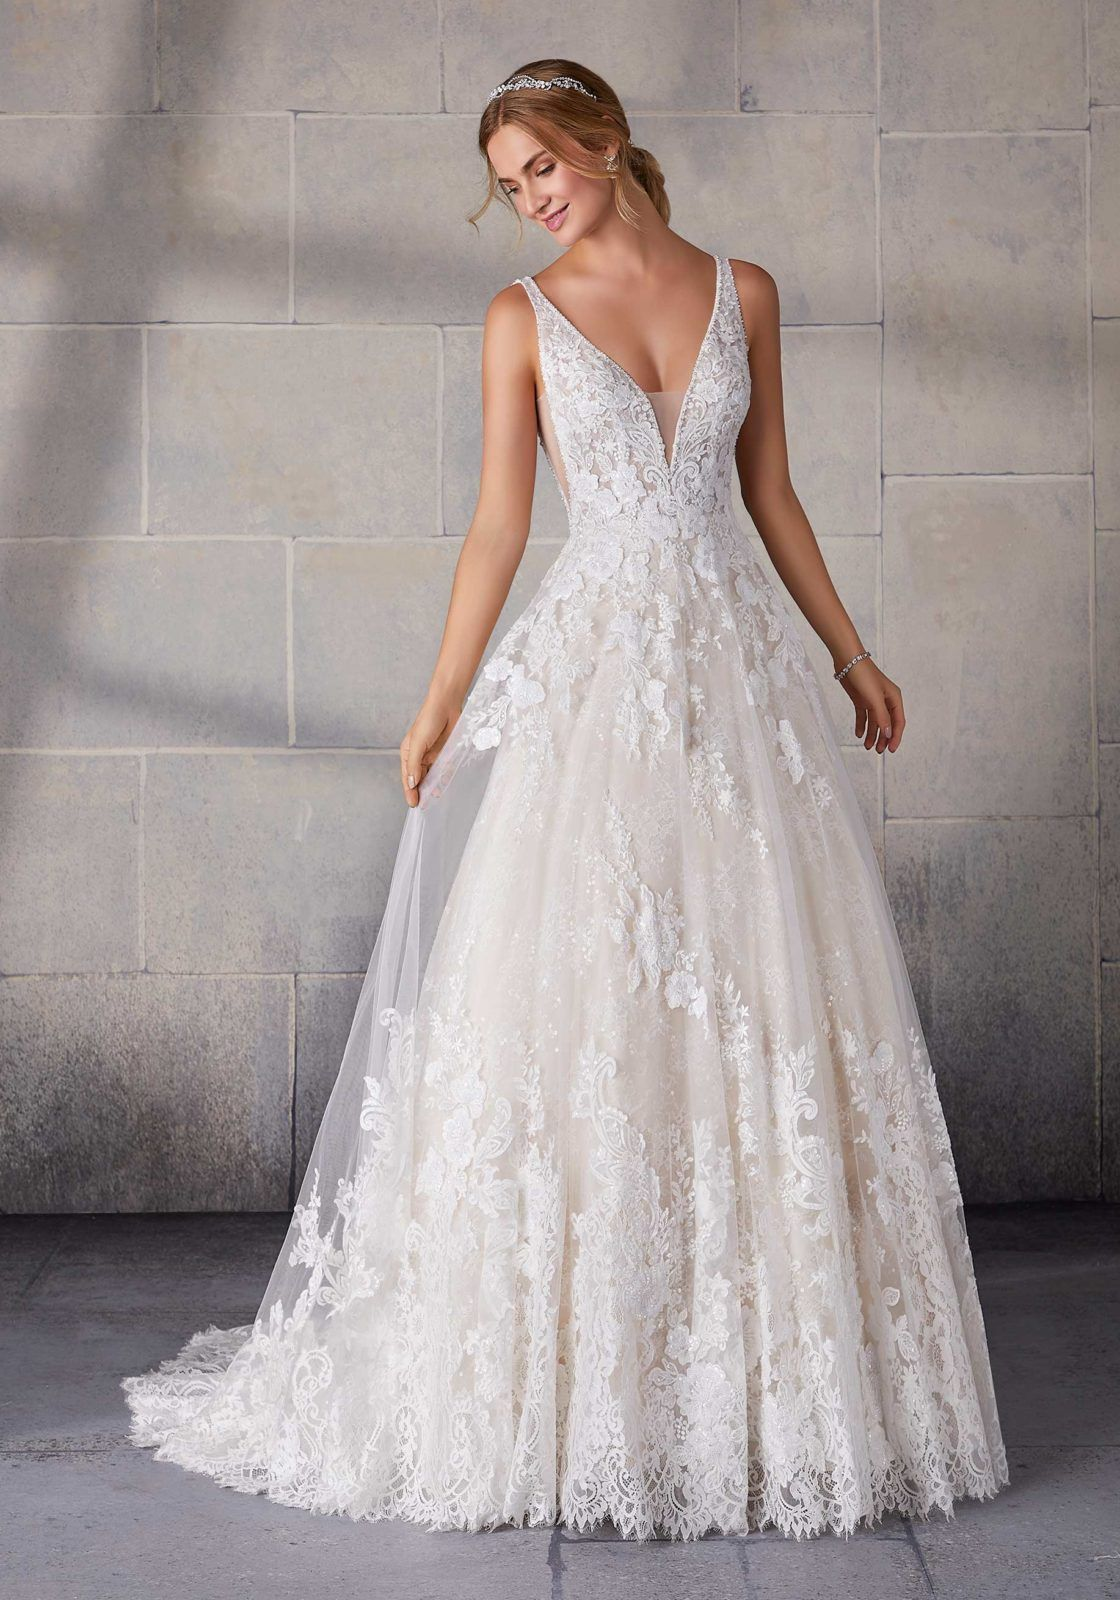 Suzanne Wedding Dress By Morilee Available At The Bridal Shoppe In St Louis Mo Www Bridalshoppeinc In 2020 Ball Gowns Wedding Wedding Dresses Lace Wedding Gowns Lace